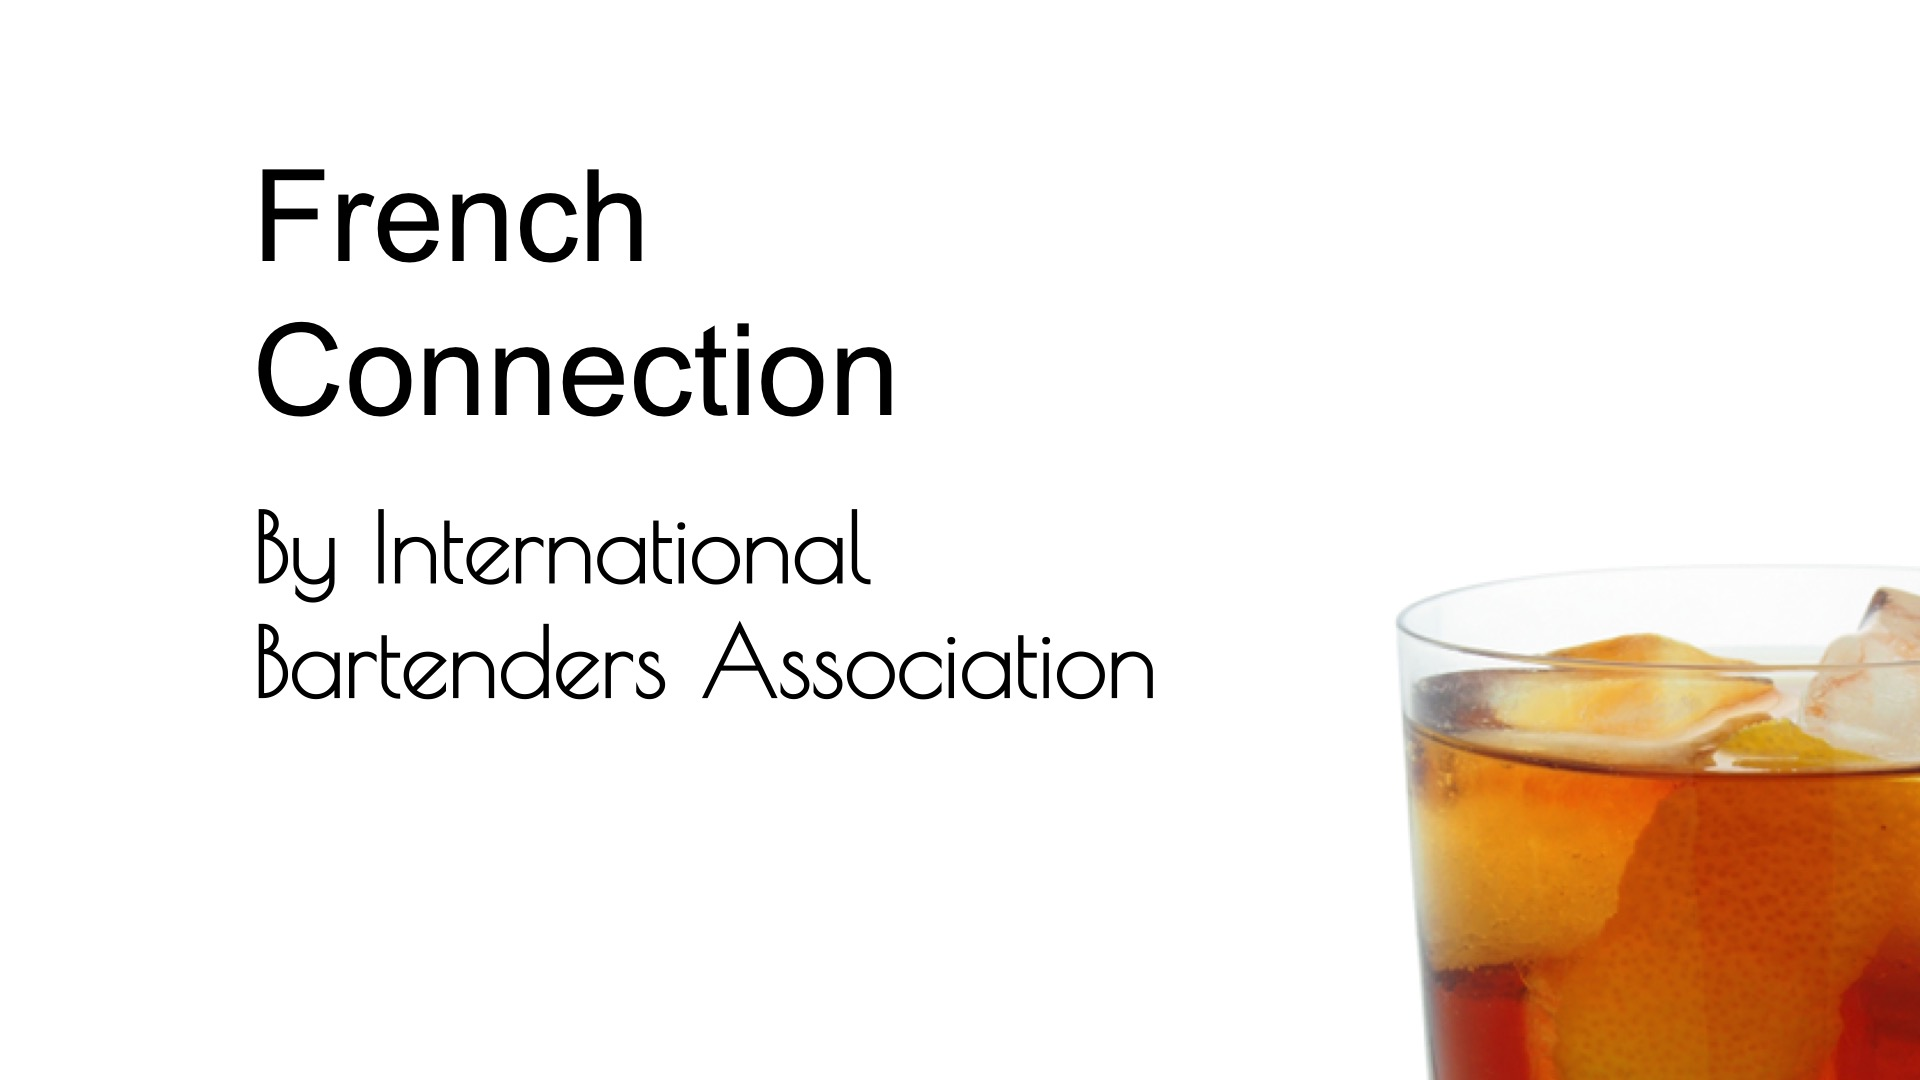 Video for French Connection (IBA) from Commonwealth Cocktails